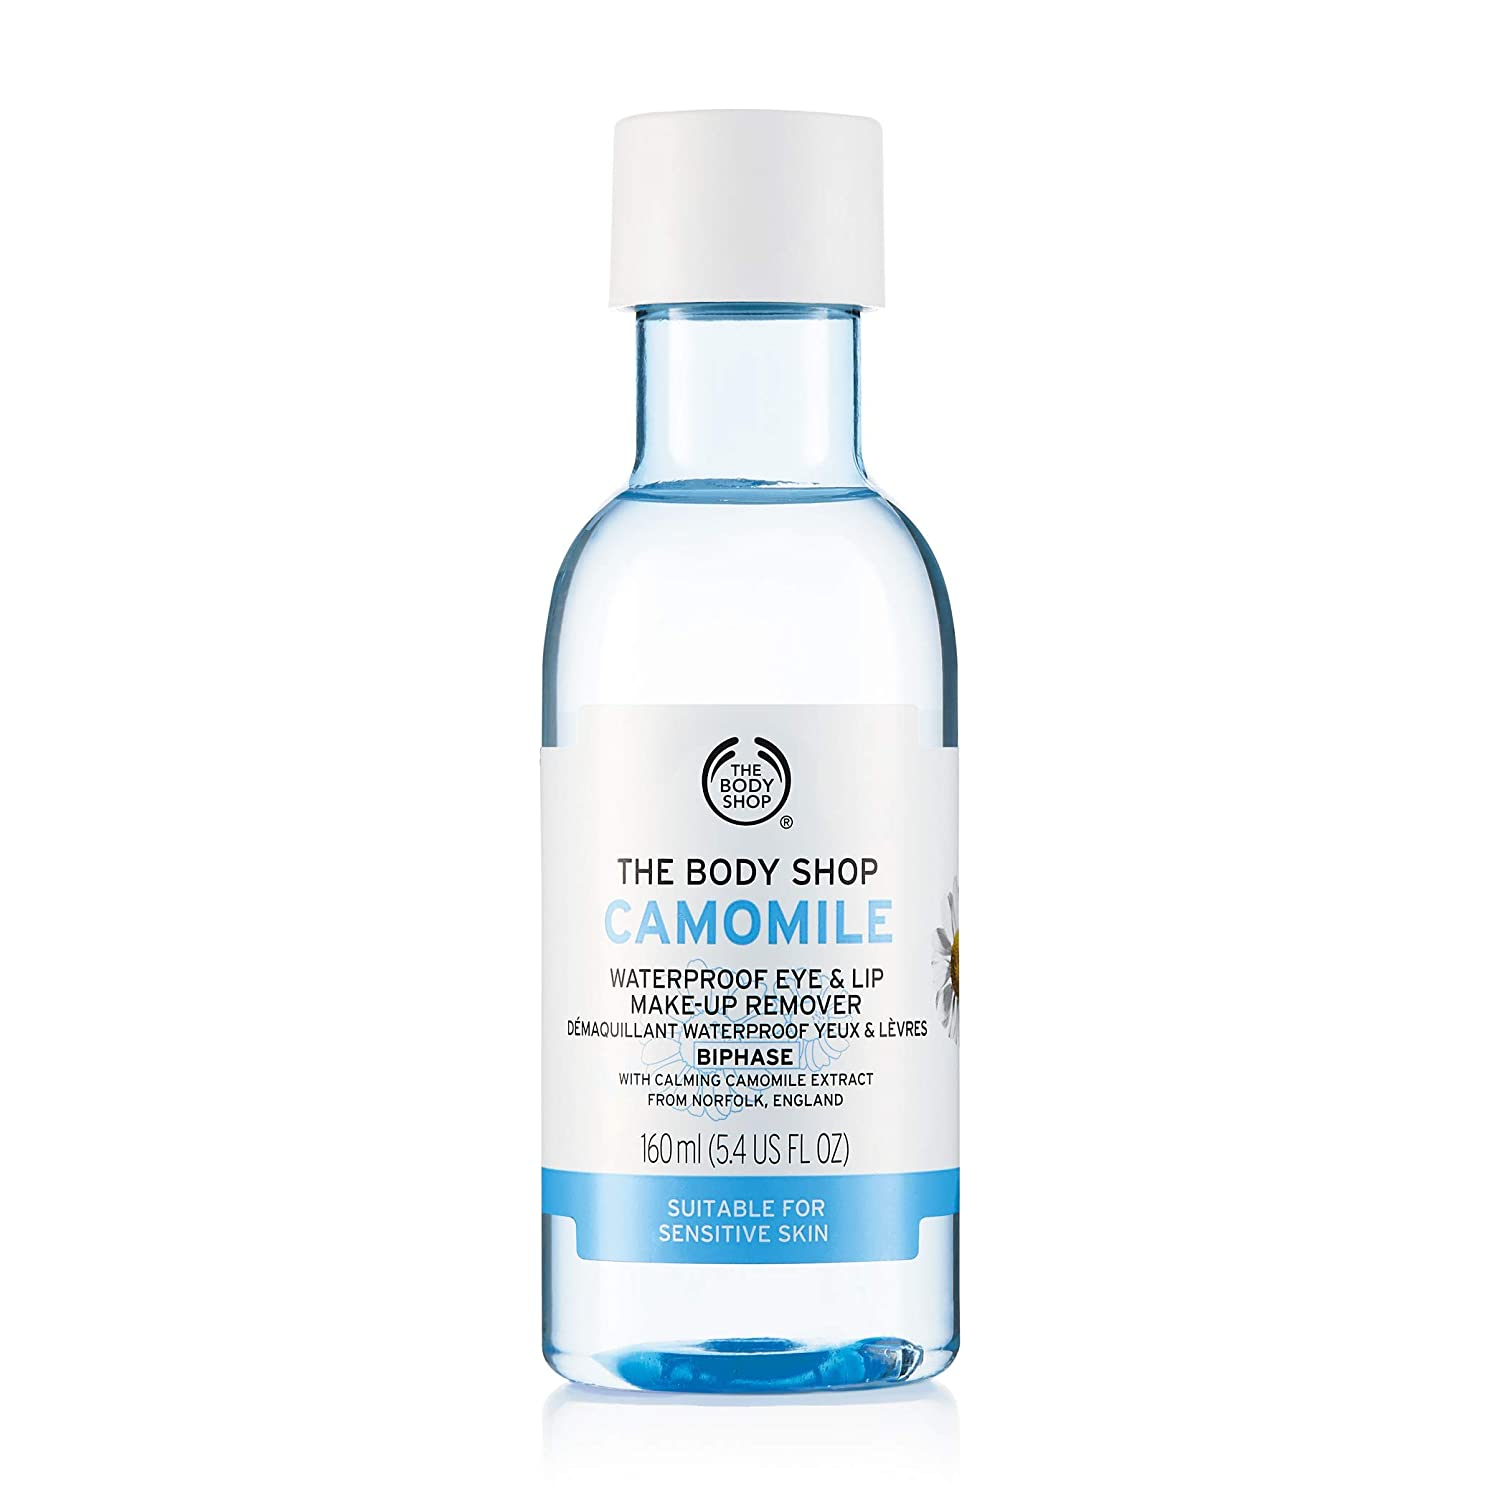 The Body Shop Camomile Waterproof Eye Lip Makeup Remover Max 85% OFF 5. Popular popular and